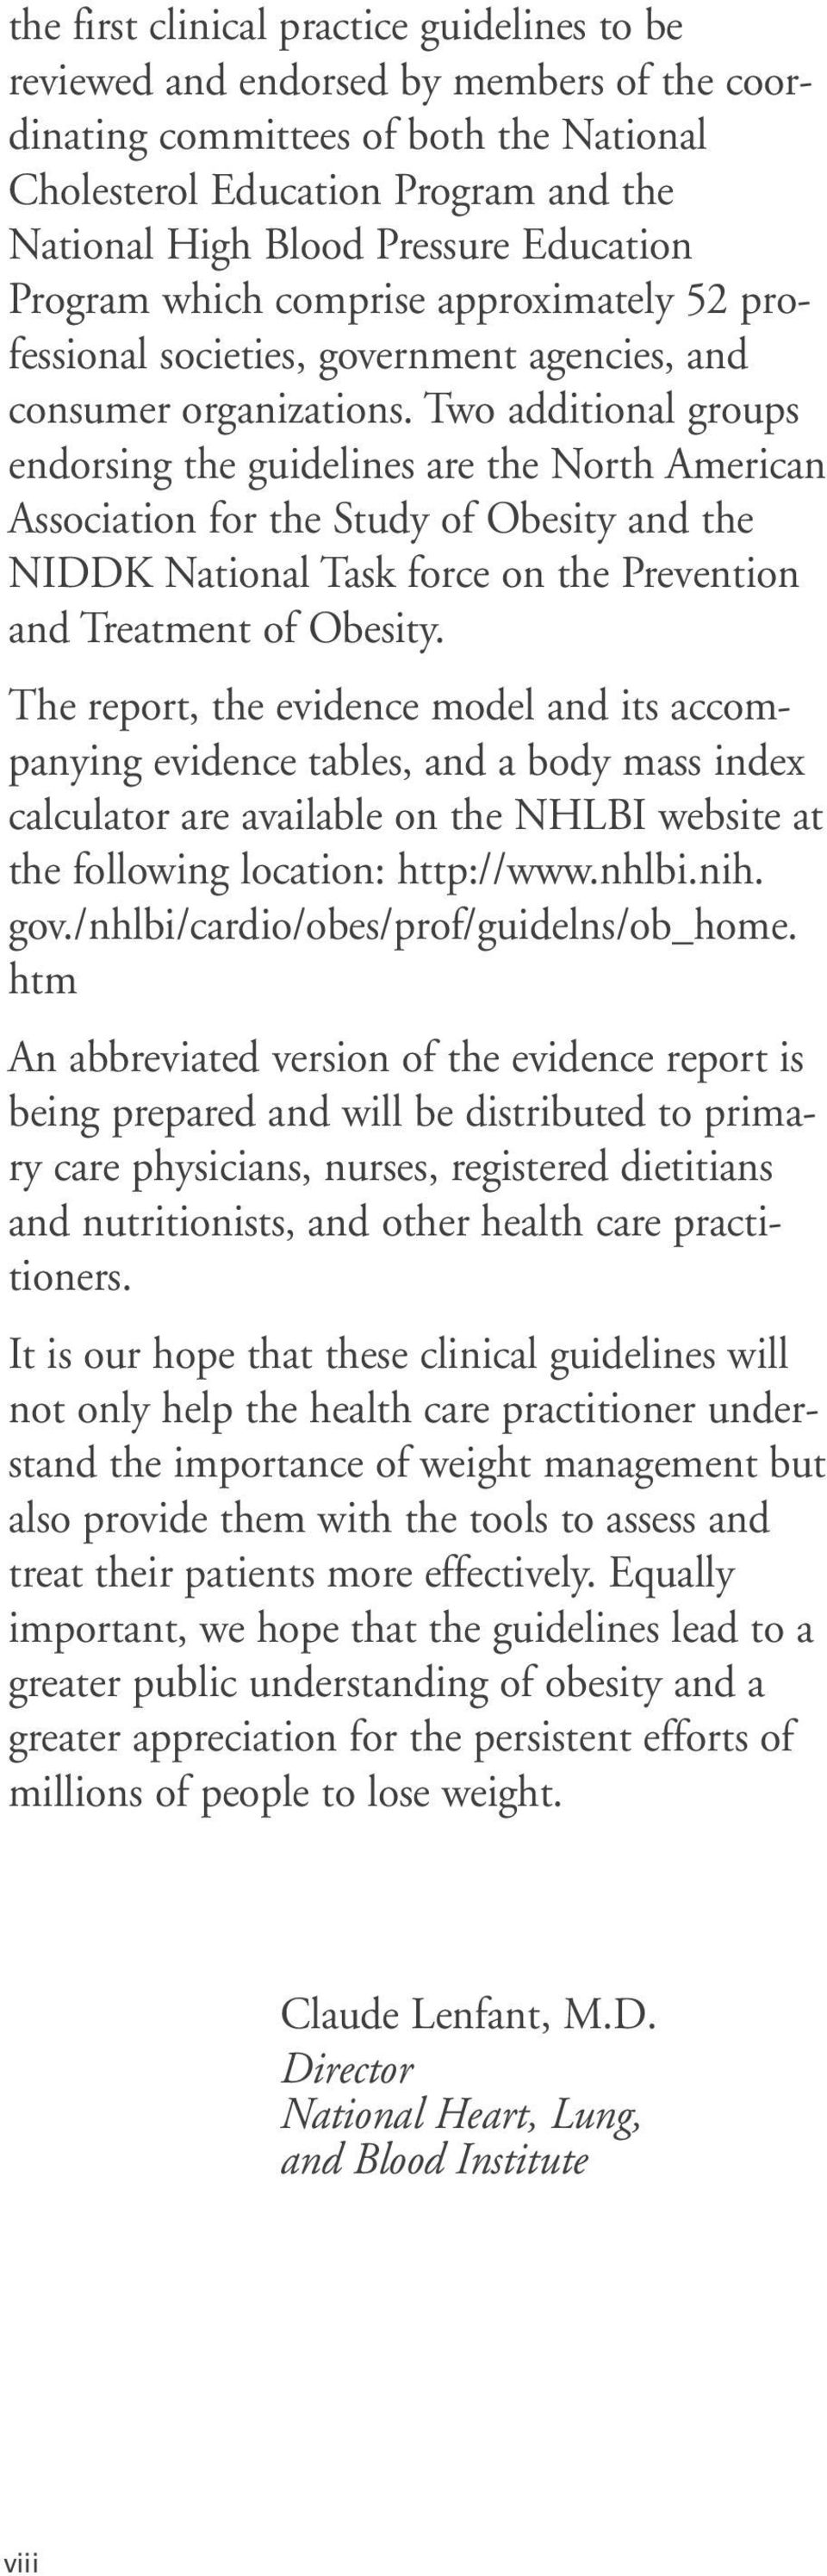 Two additional groups endorsing the guidelines are the North American Association for the Study of Obesity and the NIDDK National Task force on the Prevention and Treatment of Obesity.